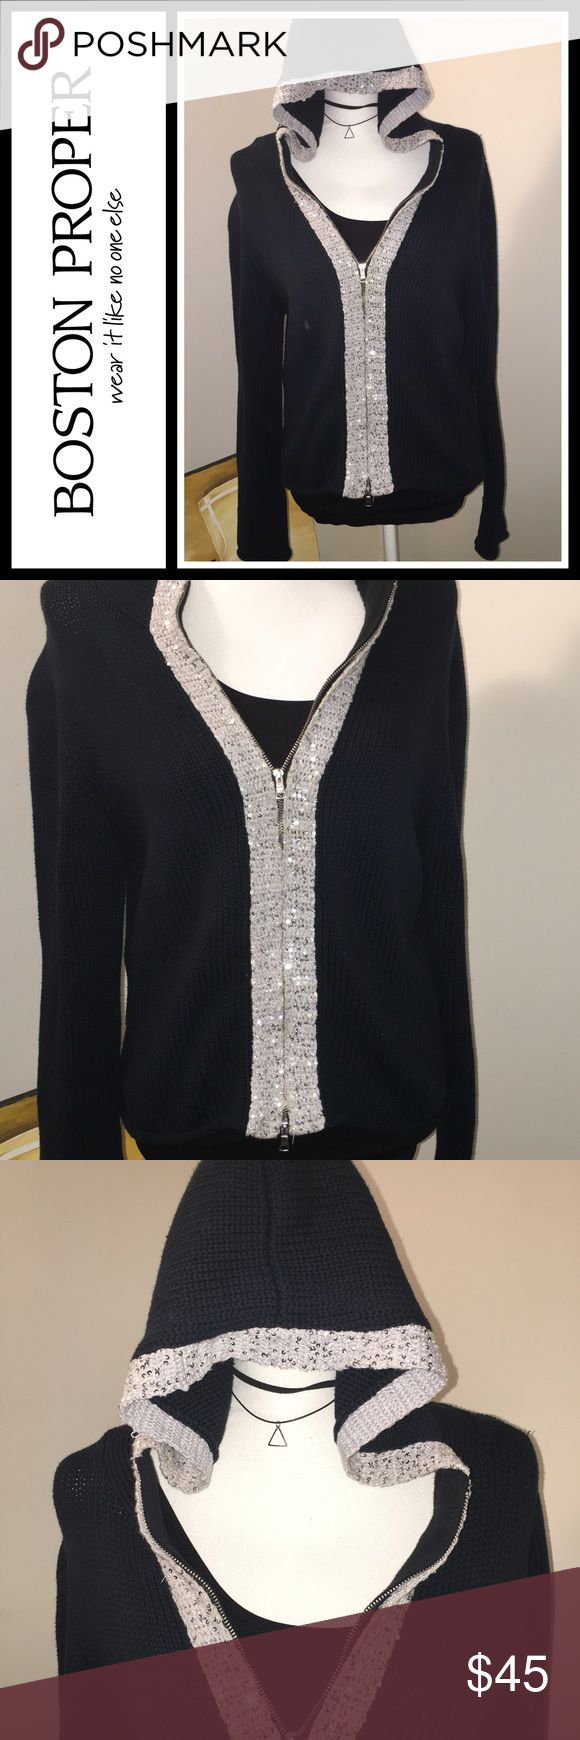 Boston Proper Navy Zip up Hoodie with Sequins Excellent condition, 100% Wool - heavy material - navy blue with silver Sequin trim - size medium Boston Proper Tops Sweatshirts & Hoodies